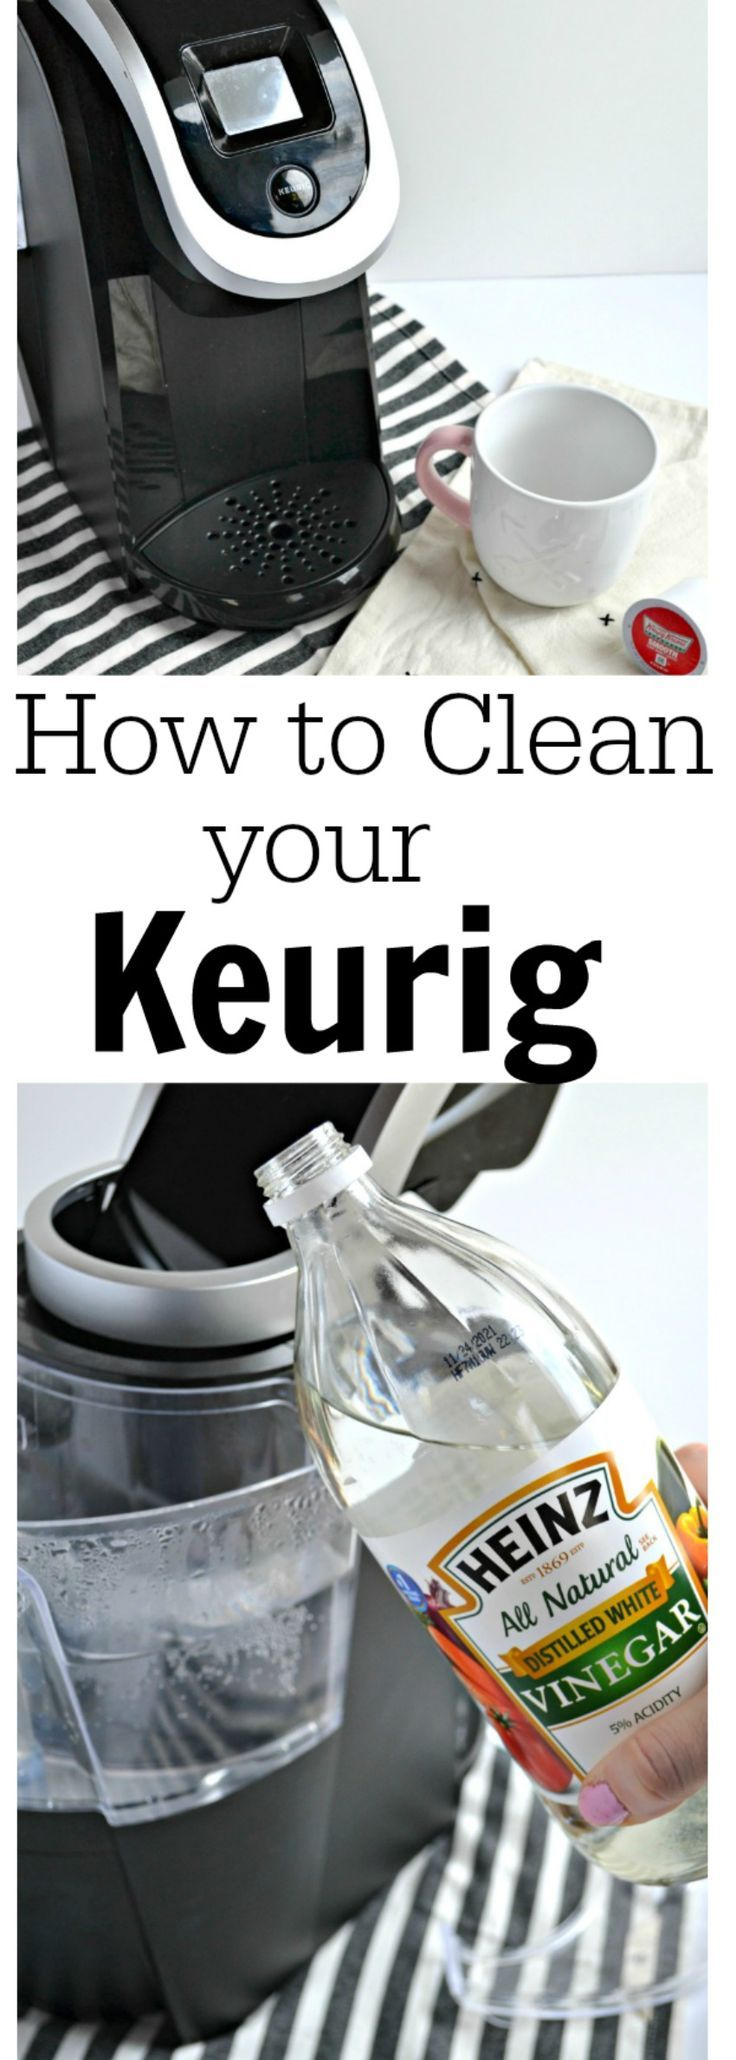 Easy Way to Clean a Keurig Coffee Maker Clean dishwasher